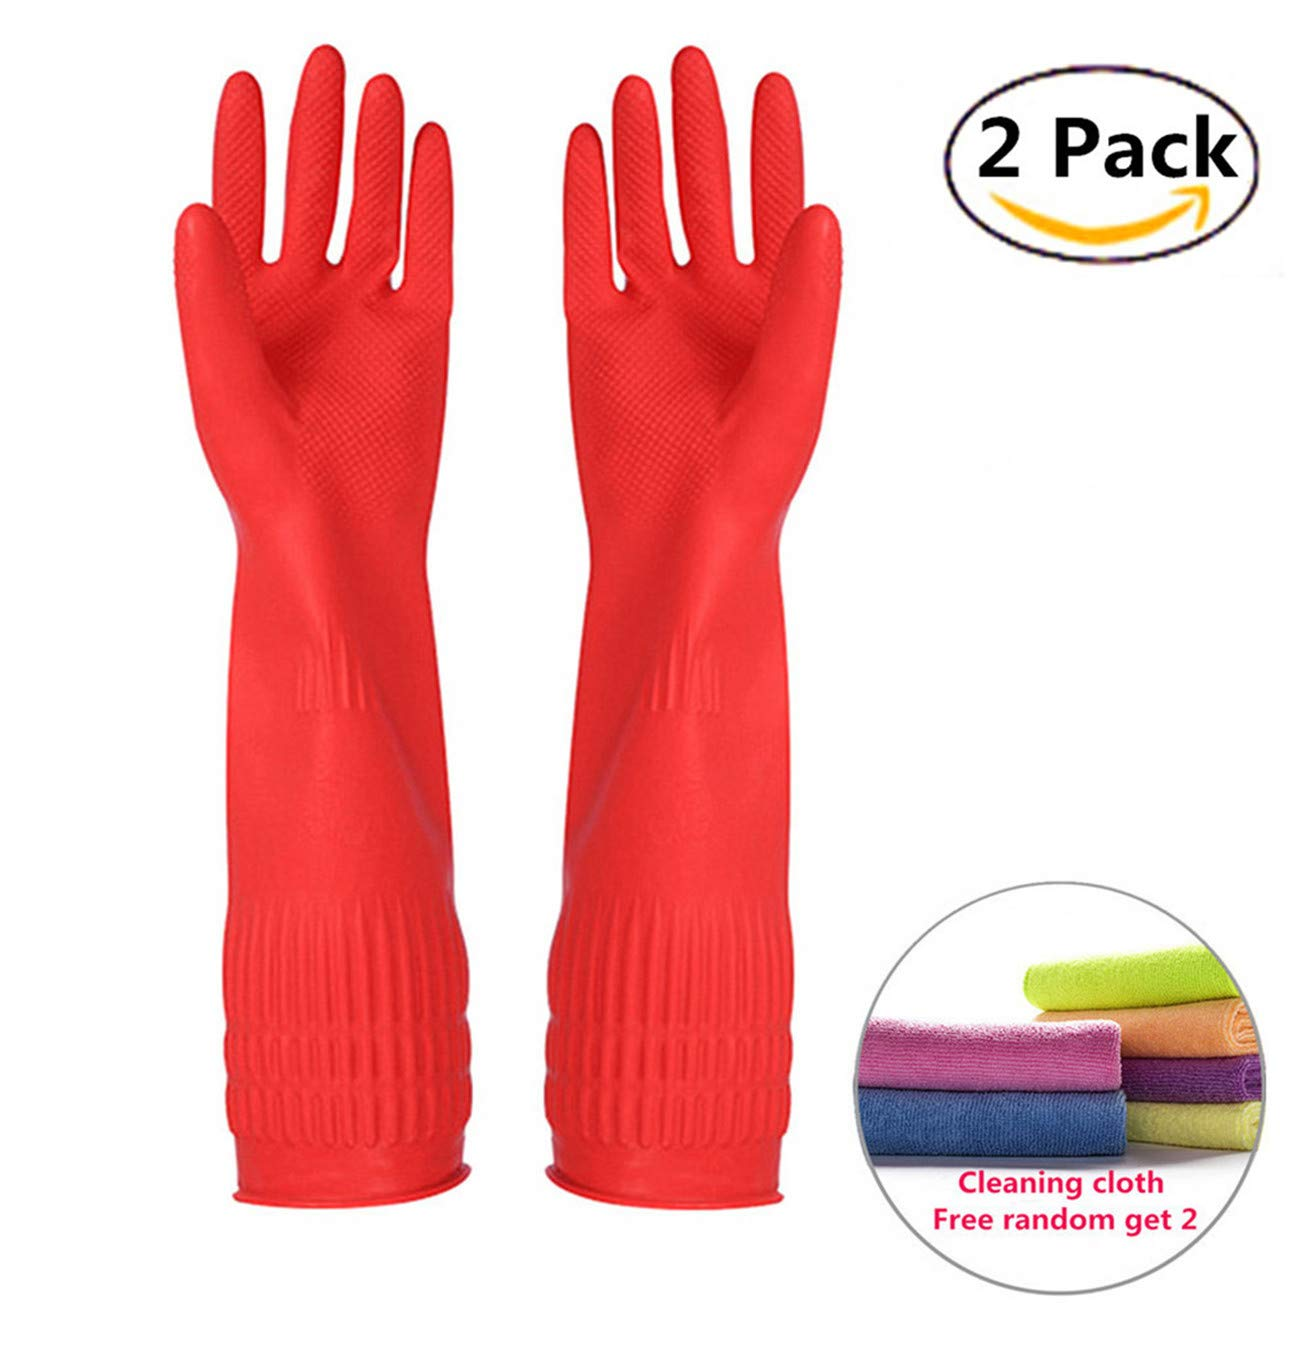 Amazon.com: Reusable 2 Pairs Rubber Cleaning Gloves